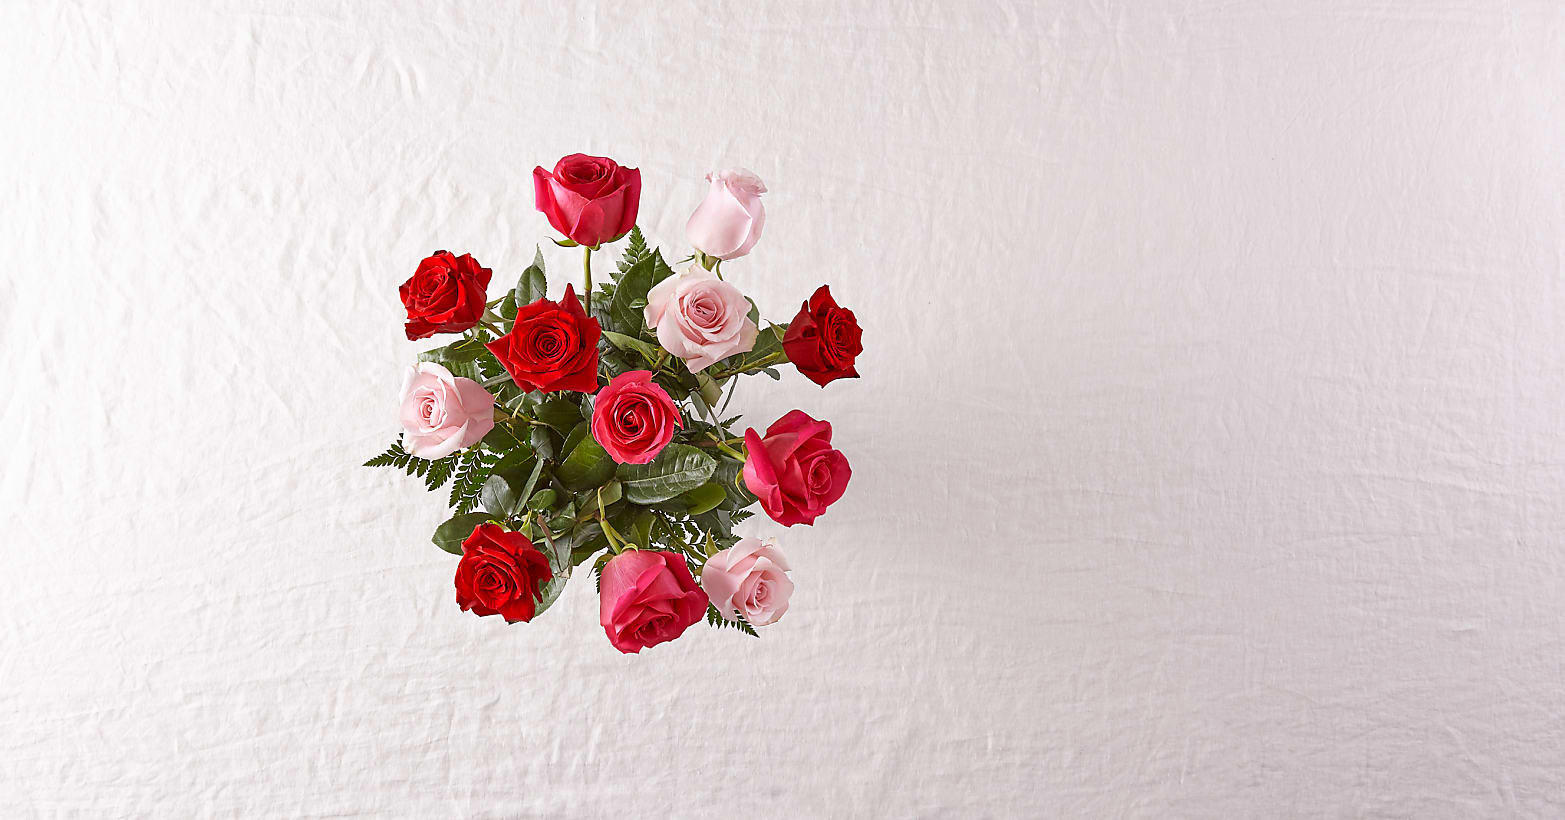 Rose Colored Love Bouquet - Image 2 Of 7